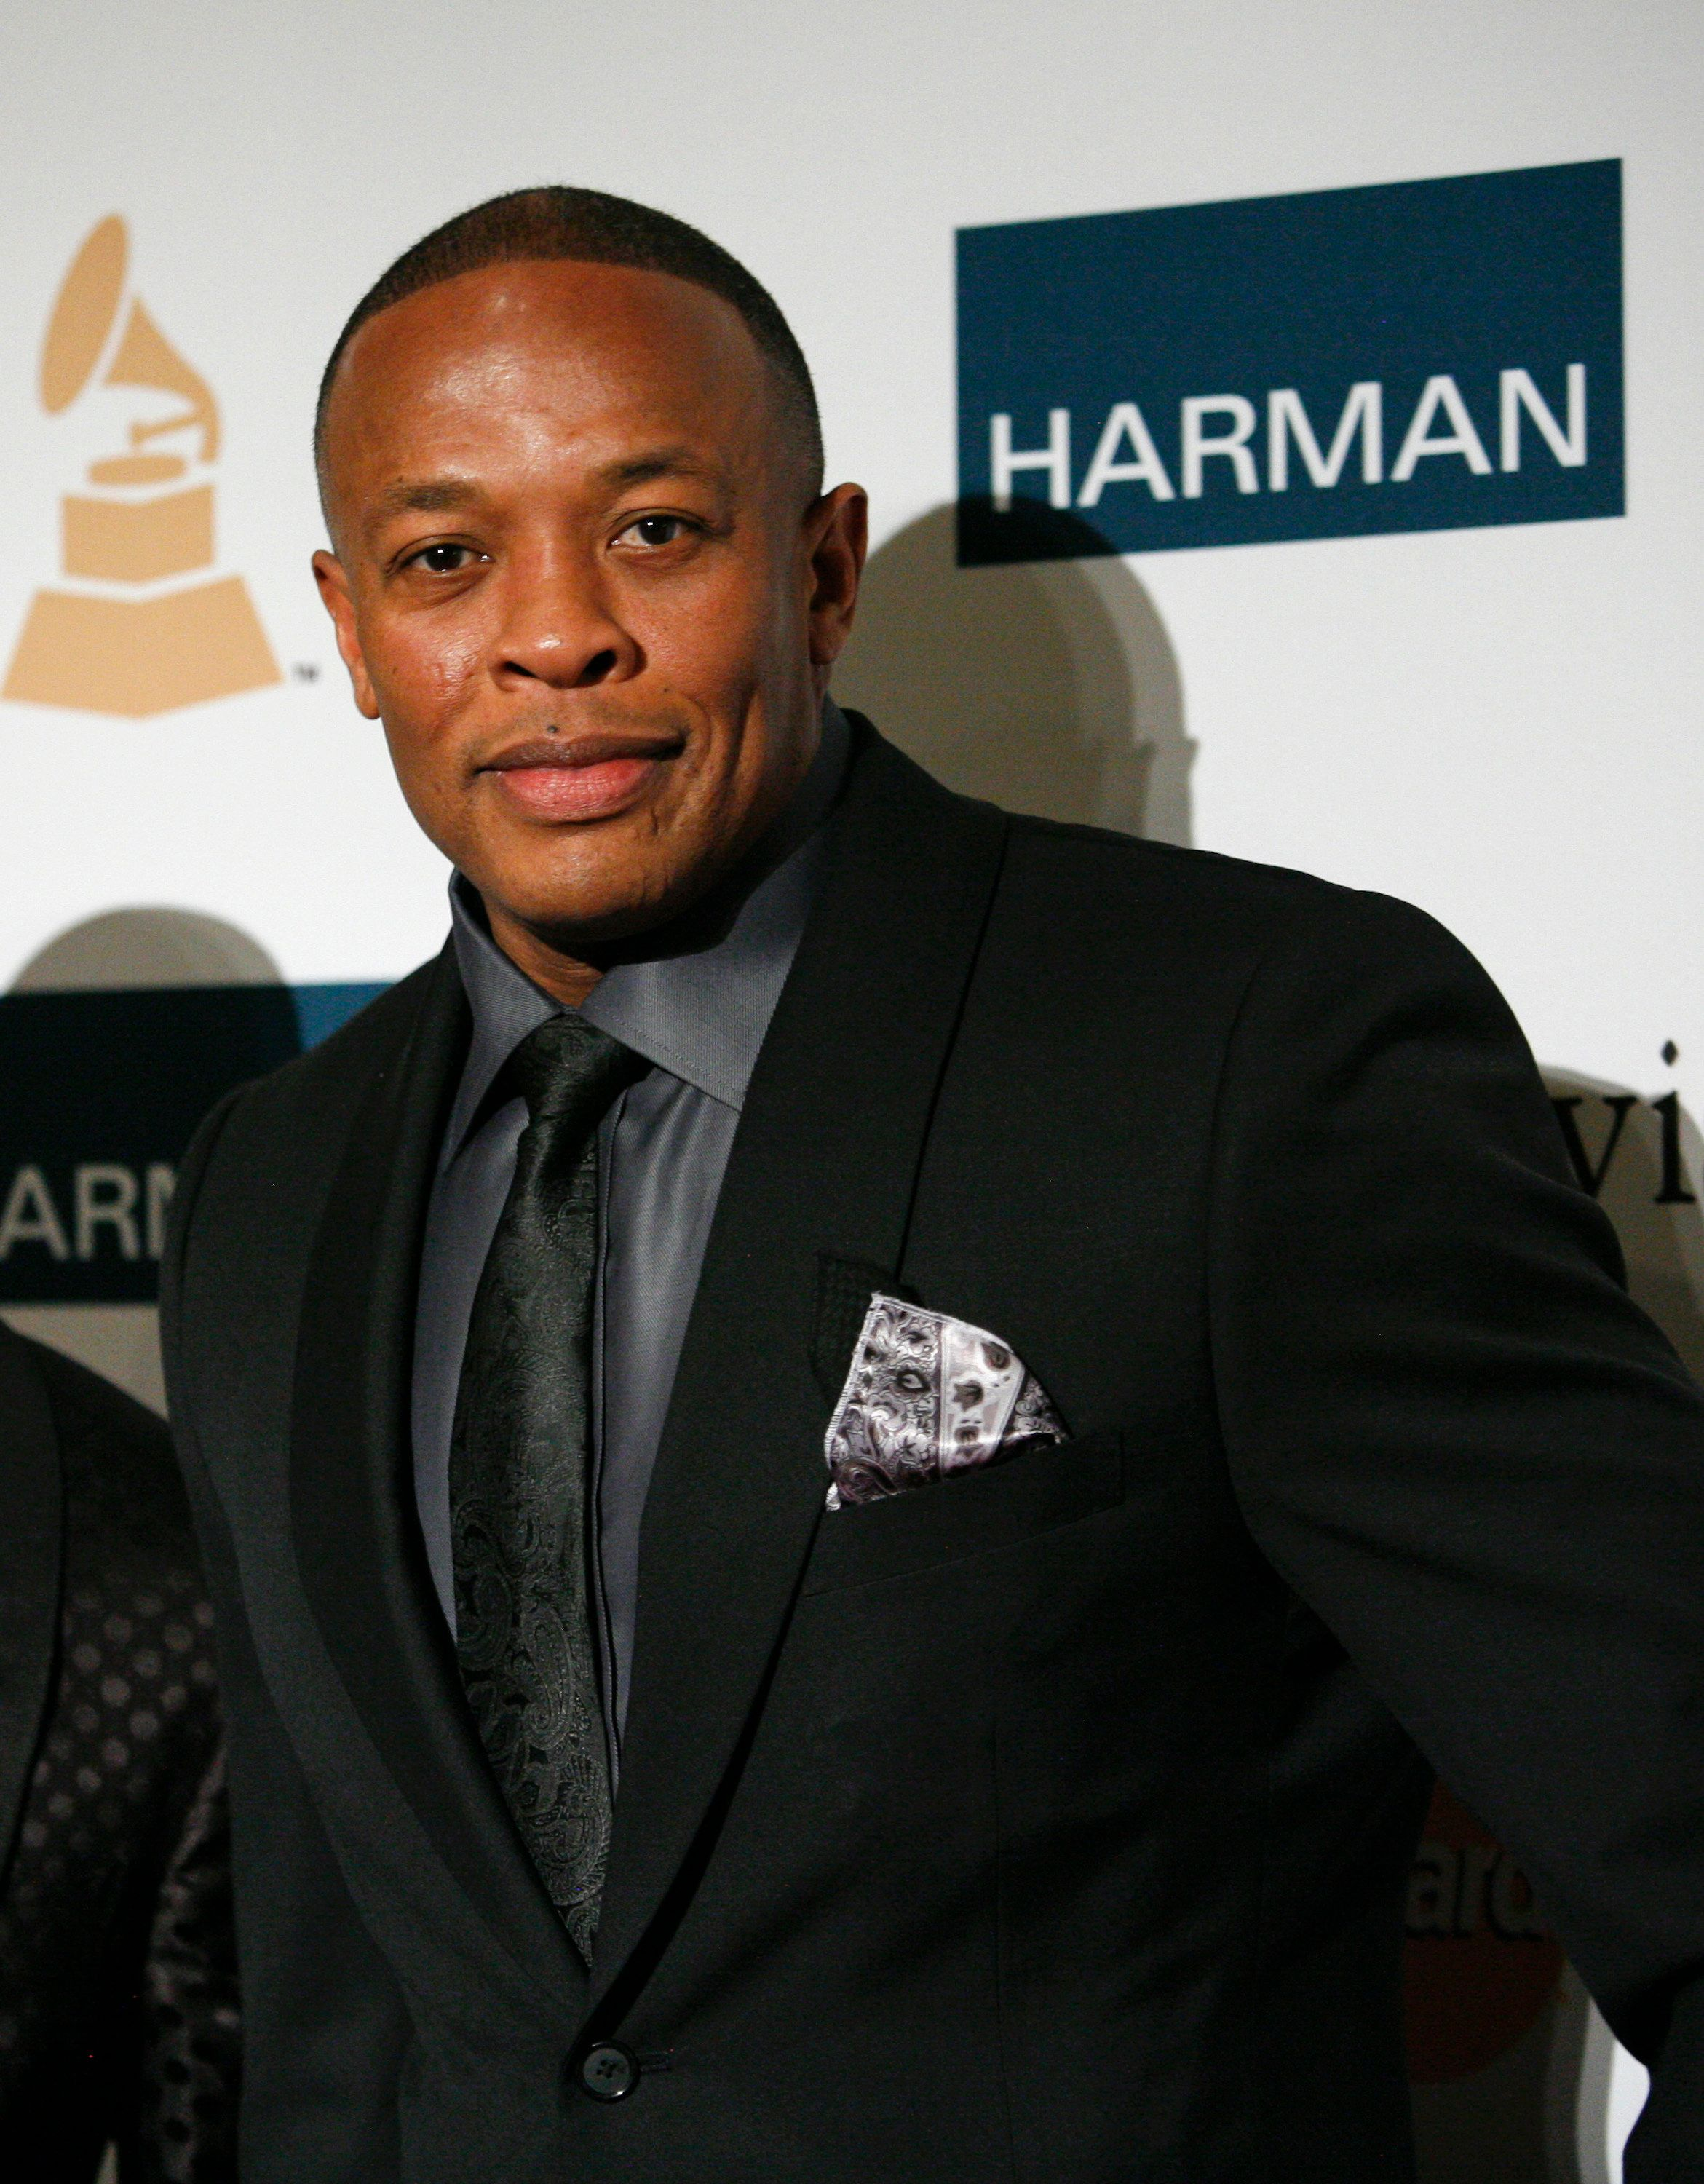 Rapper and producer Dr. Dre arrives at the Clive Davis and Recording Academy Pre-Grammy Gala and Salute to Industry Icons in Beverly Hills, California February 11, 2012. REUTERS/Jason Redmond   (UNITED STATES - Tags: ENTERTAINMENT)